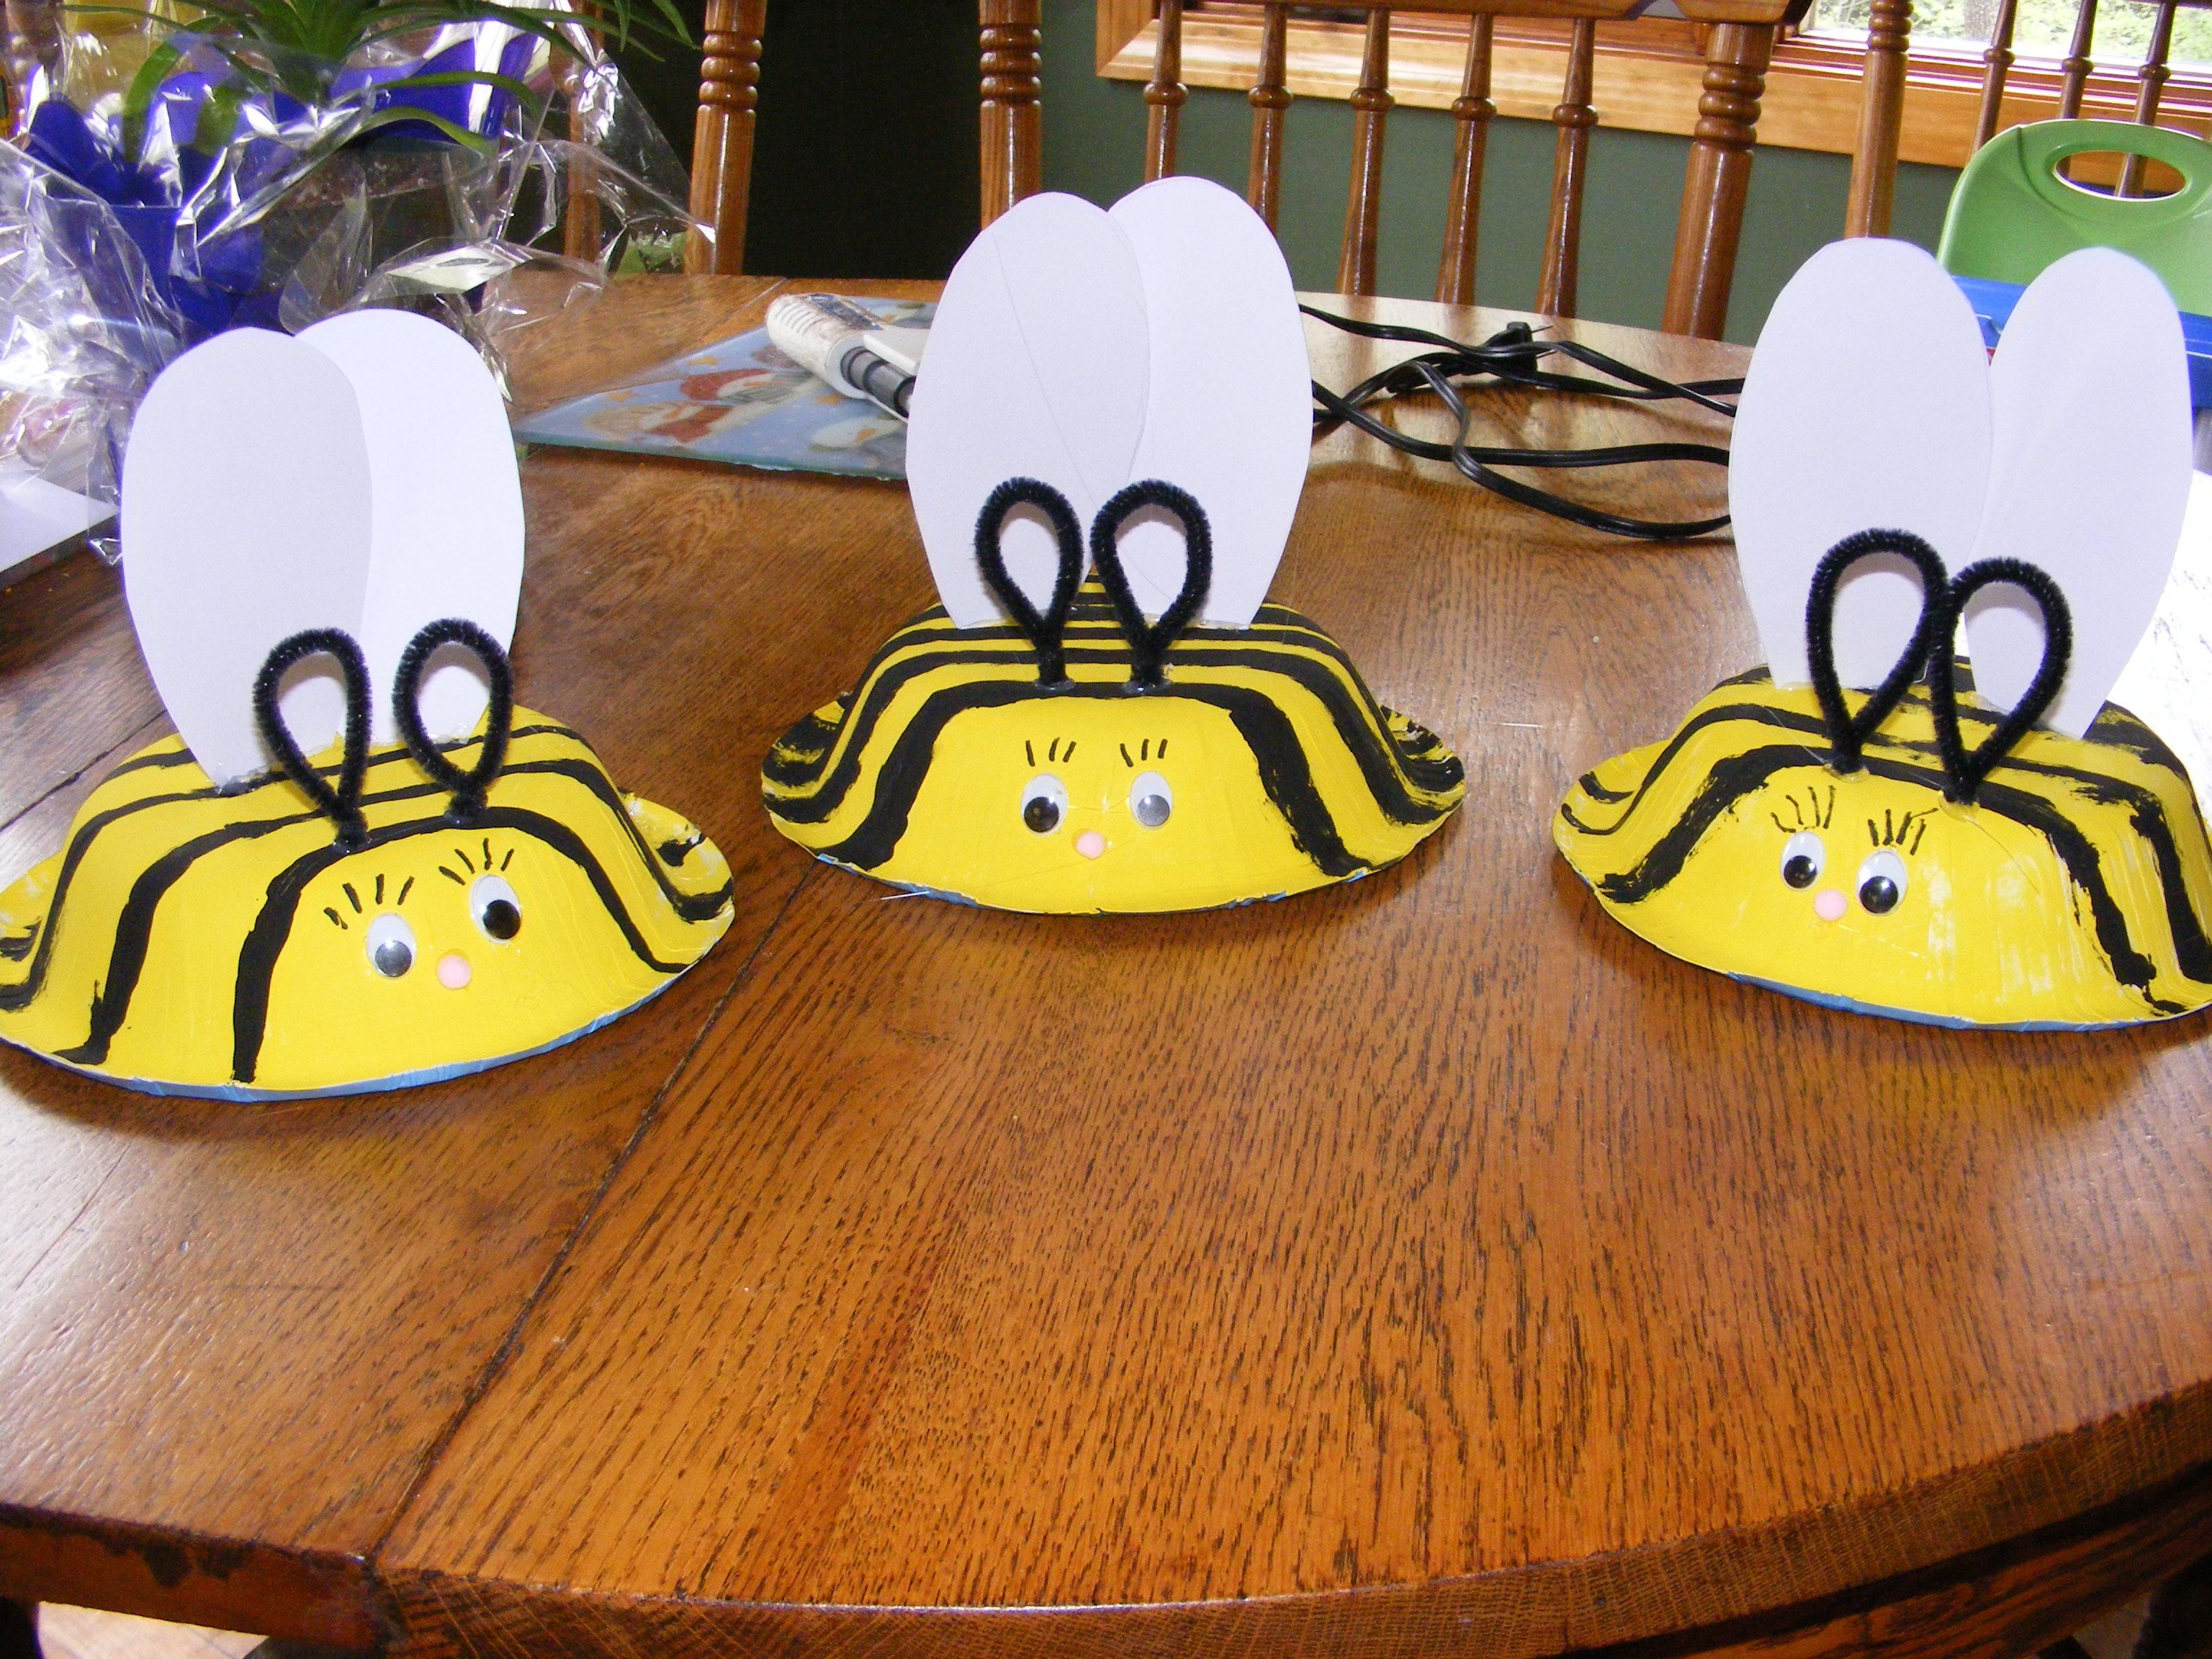 Craft bumble bee - Bumblebee Hats Paint A Paper Bowl Yellow And Add Black Stripes Cut Out Wings